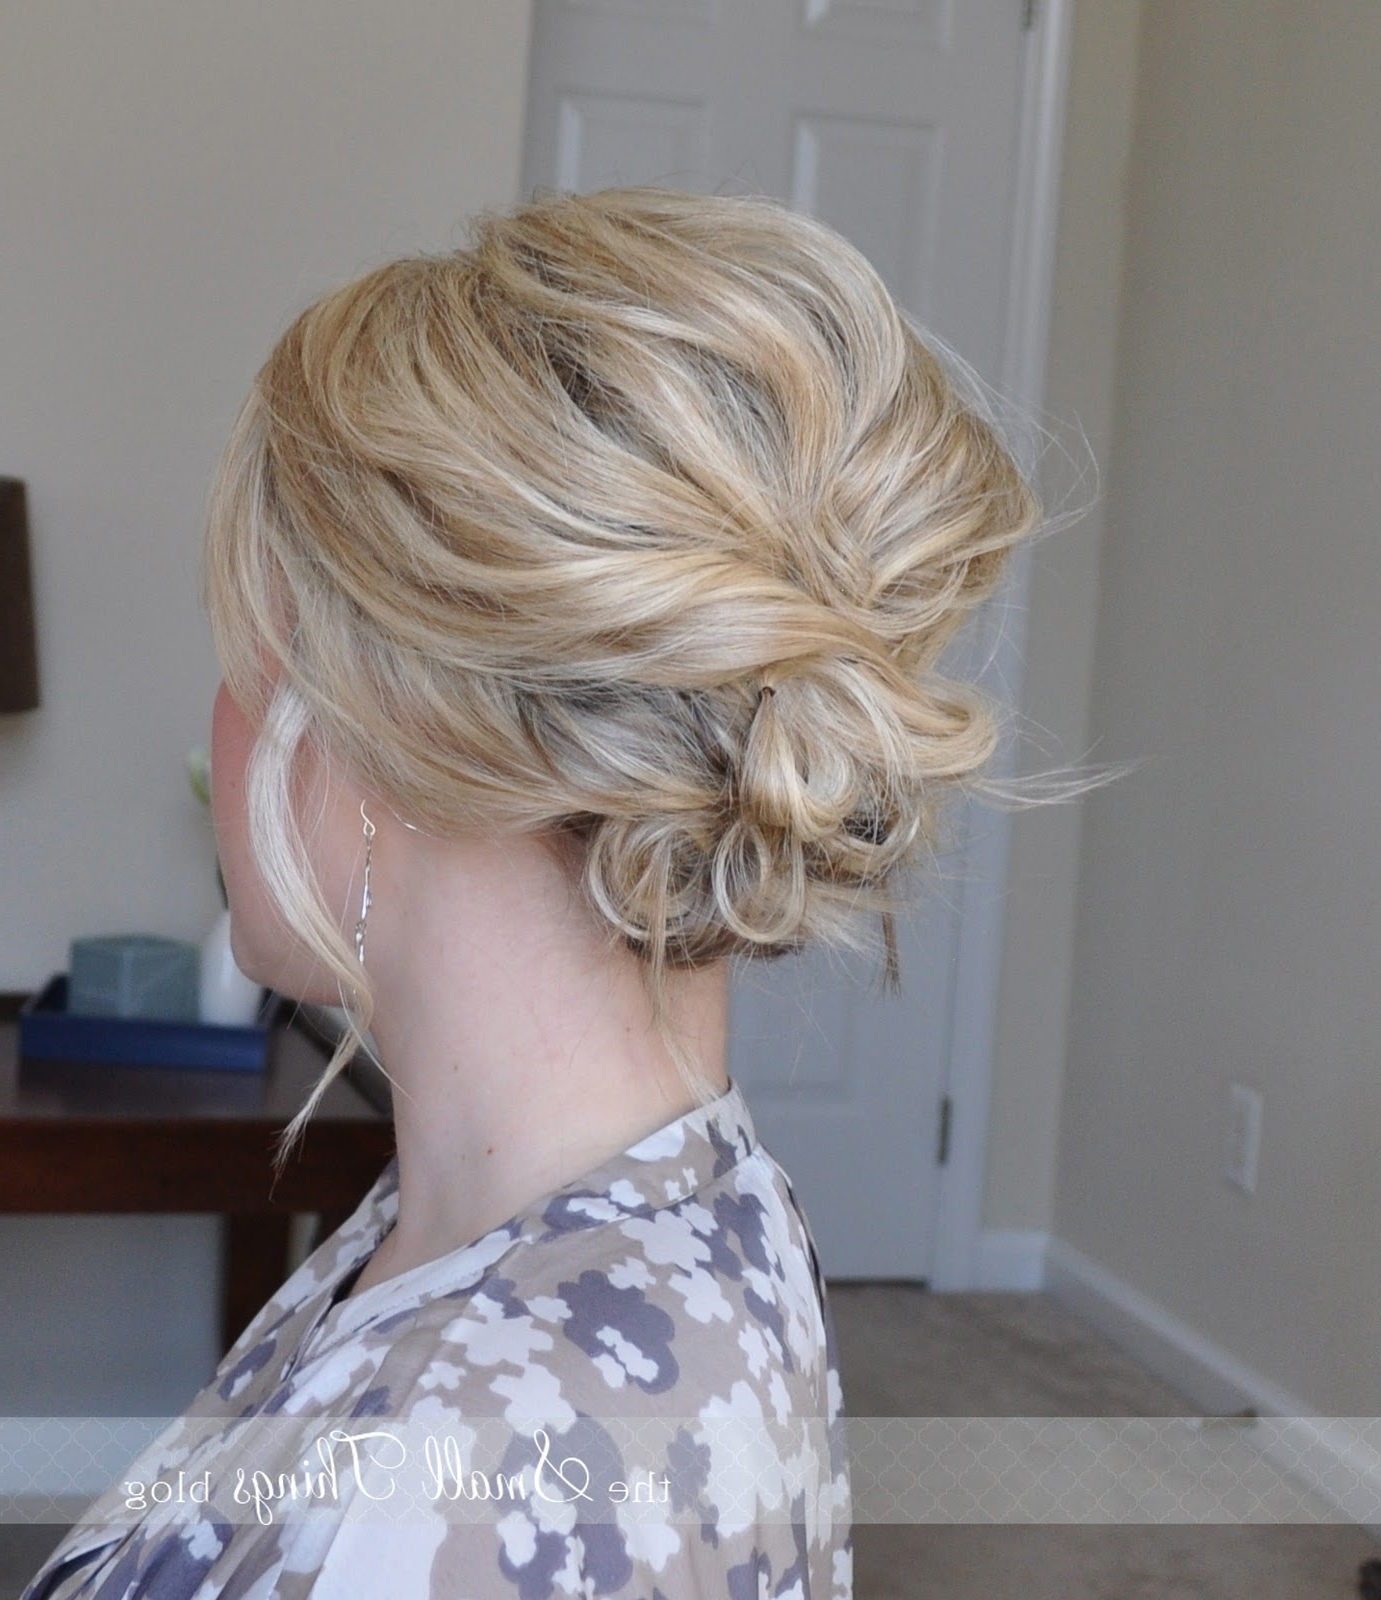 Wedding Hairstyles For Thin Hair: 15 Best Collection Of Messy Updo Hairstyles For Thin Hair